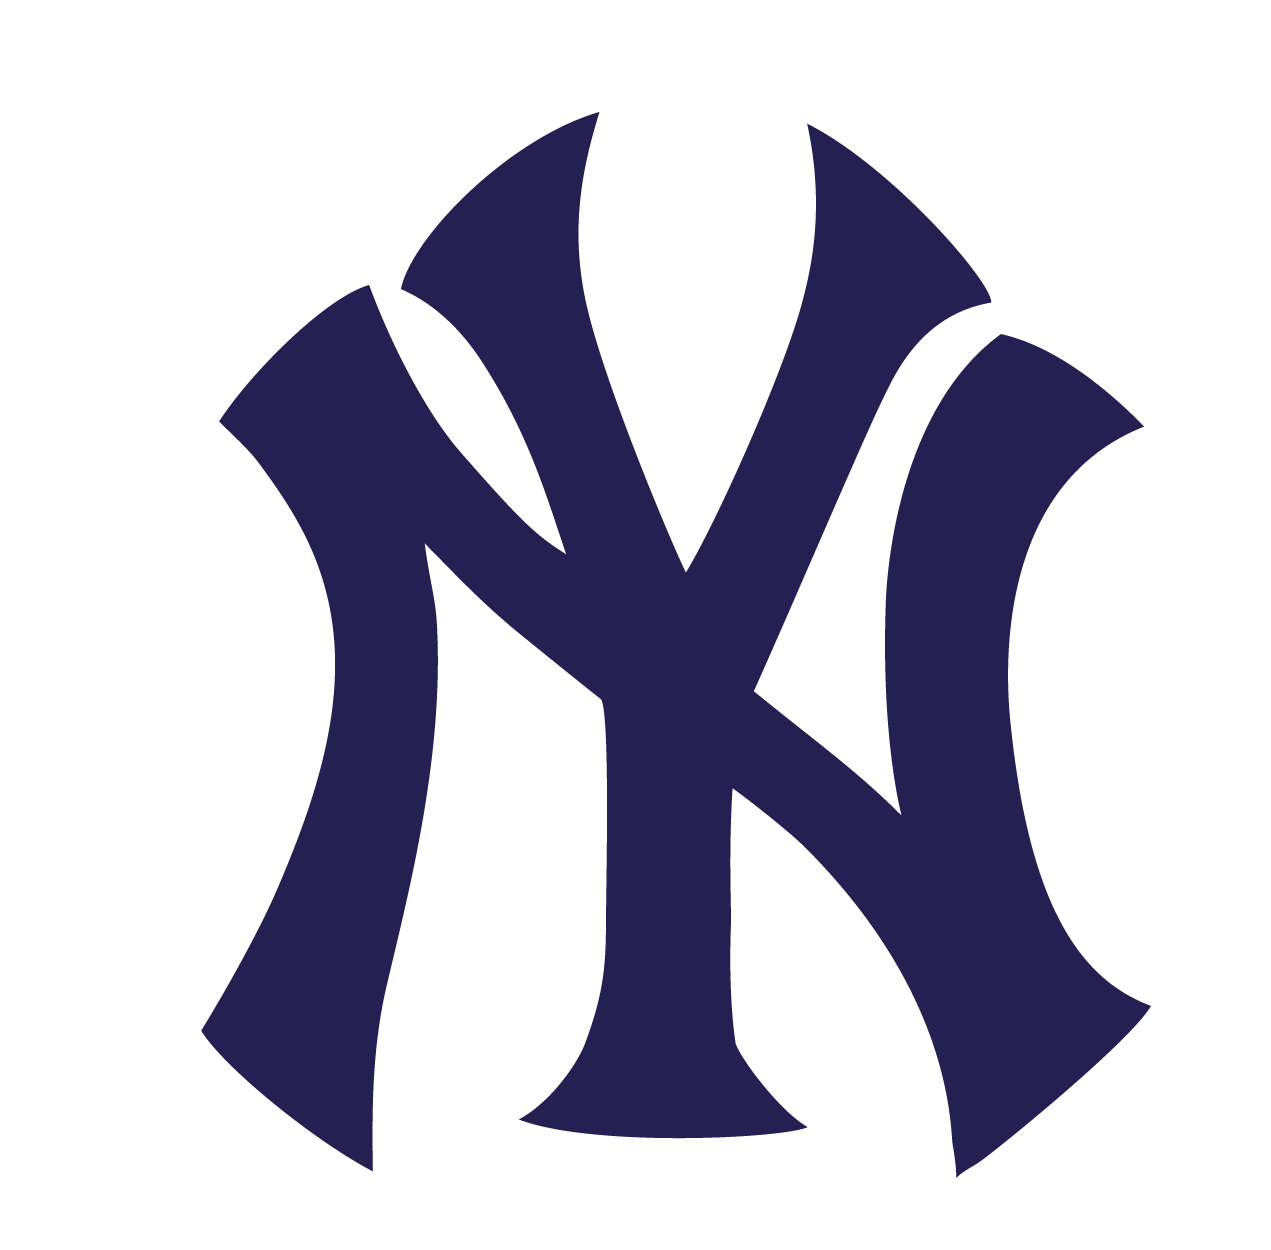 New York Yankees Logo Vinyl Sticker 163 1 99 Blunt One